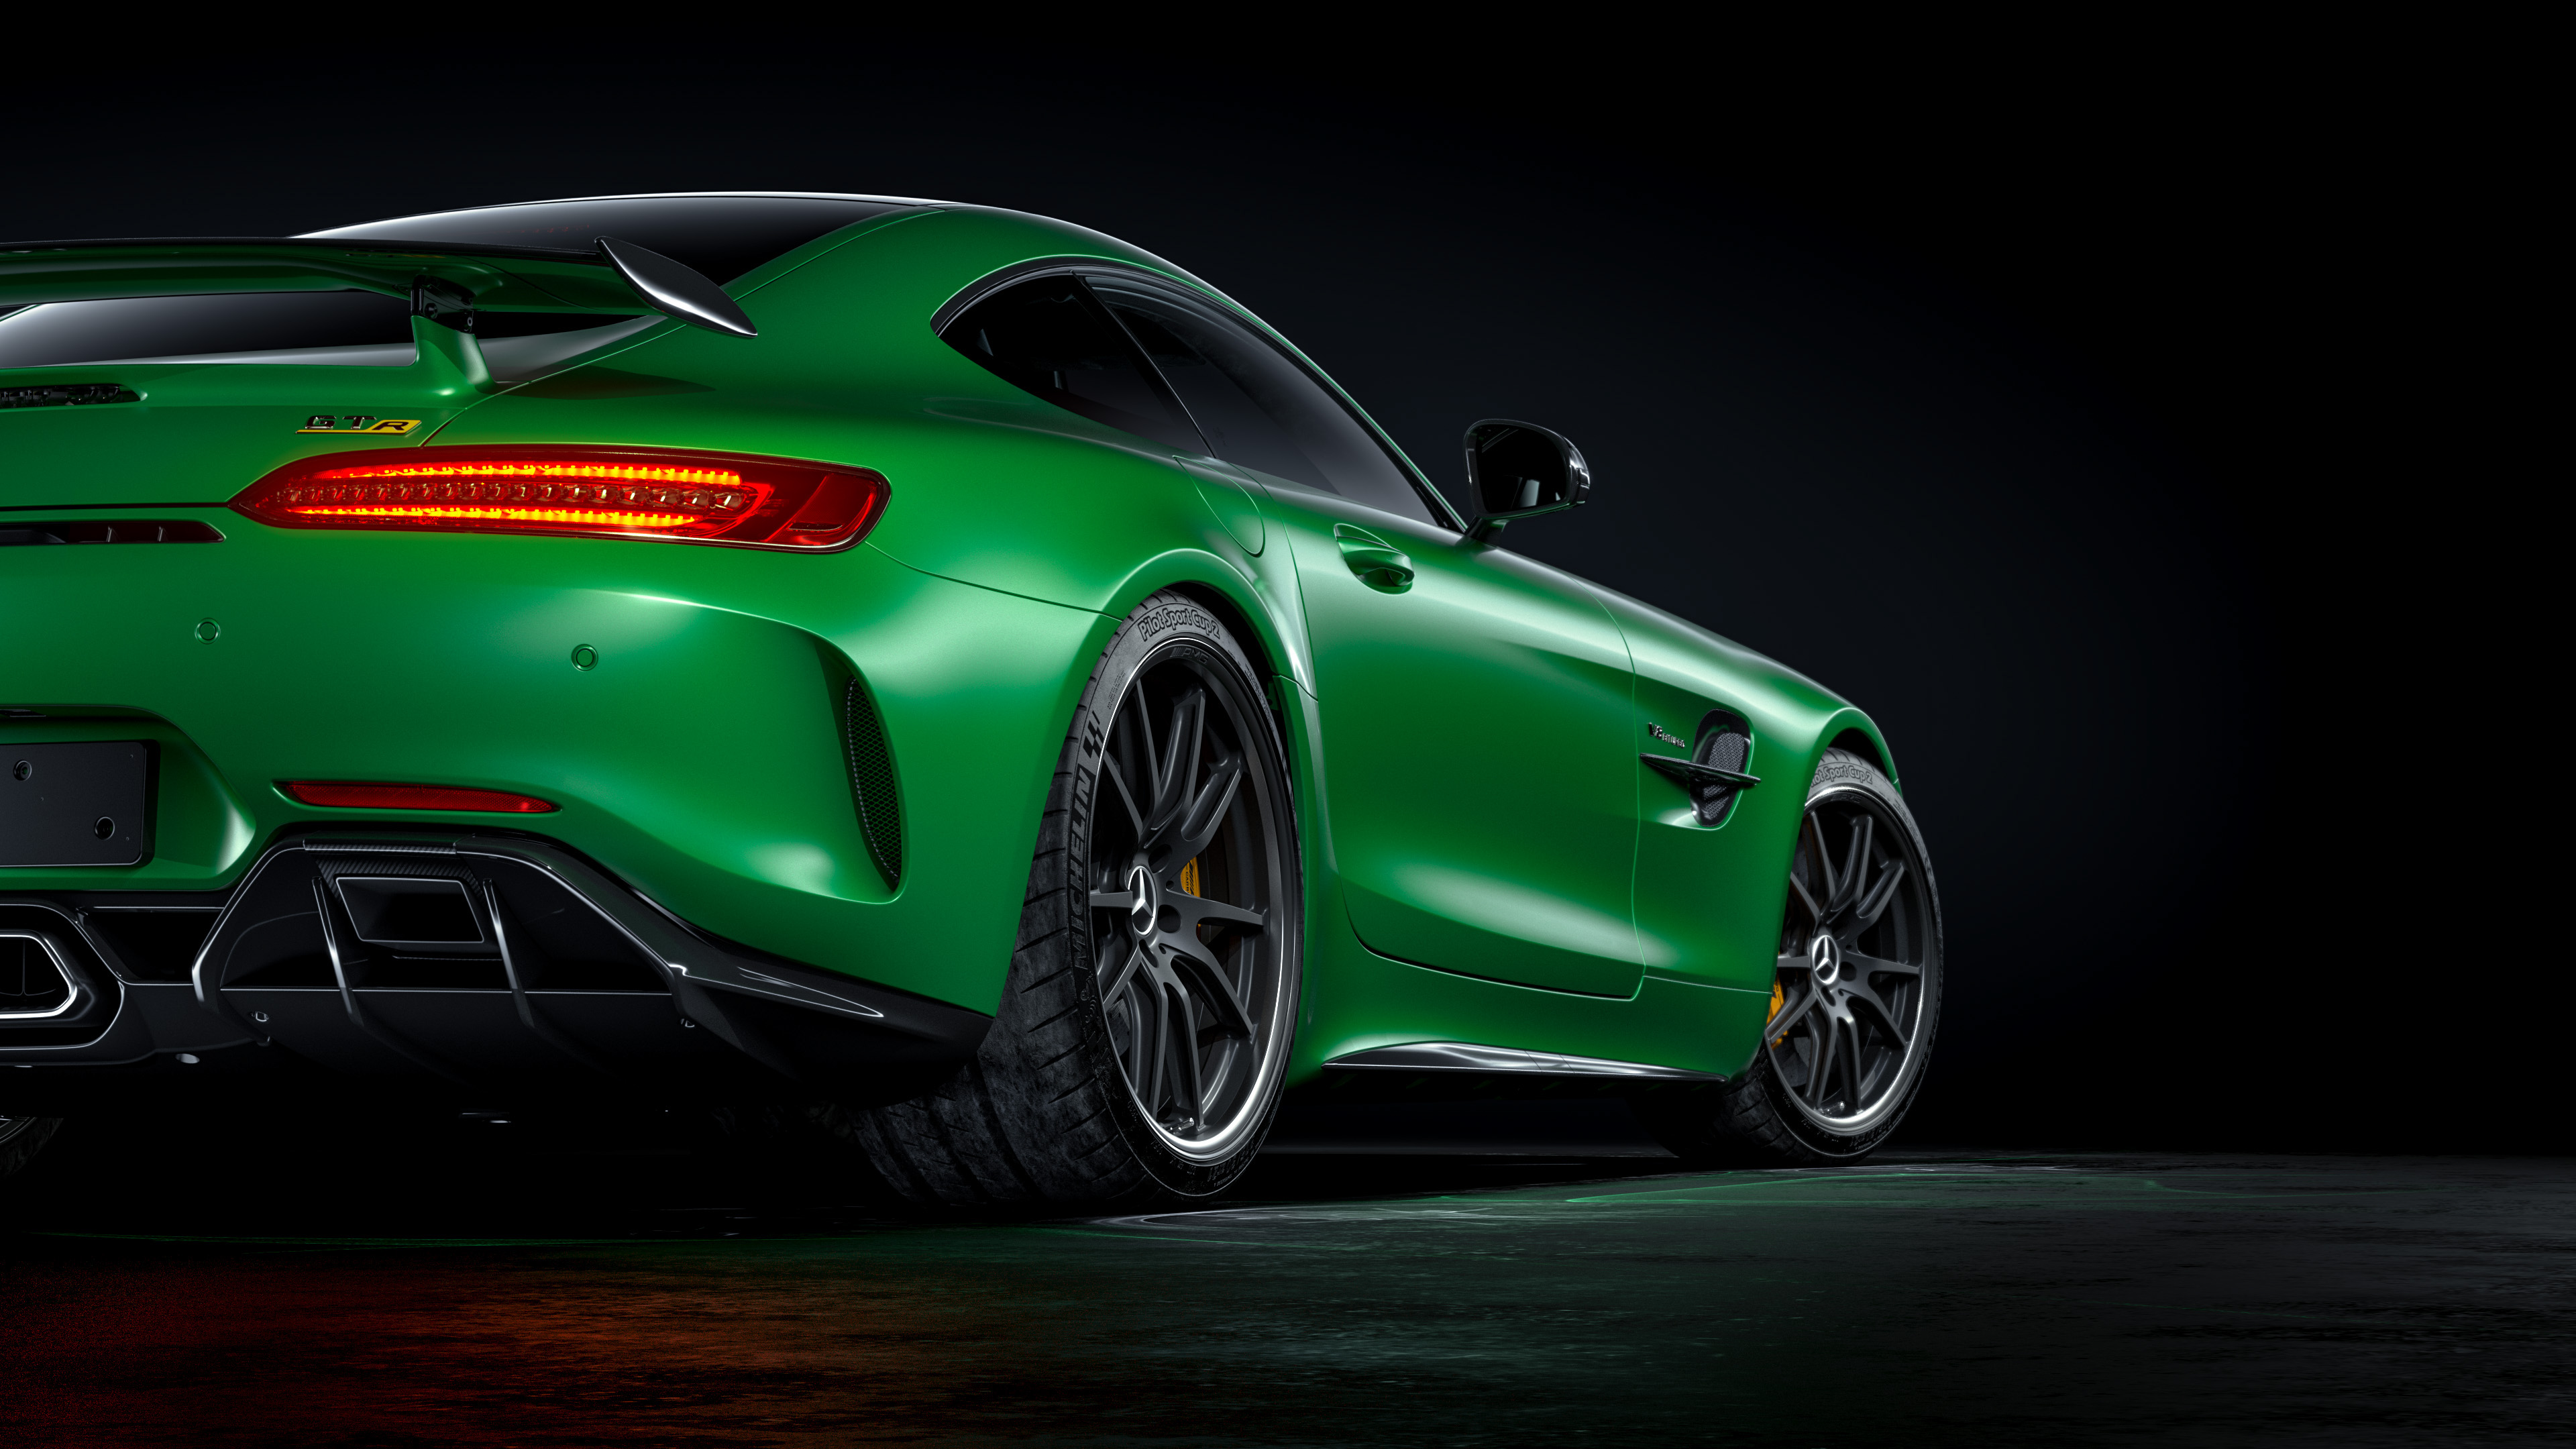 2560x1440 Mercedes Benz Amg Gtr Rear 4k 1440p Resolution Hd